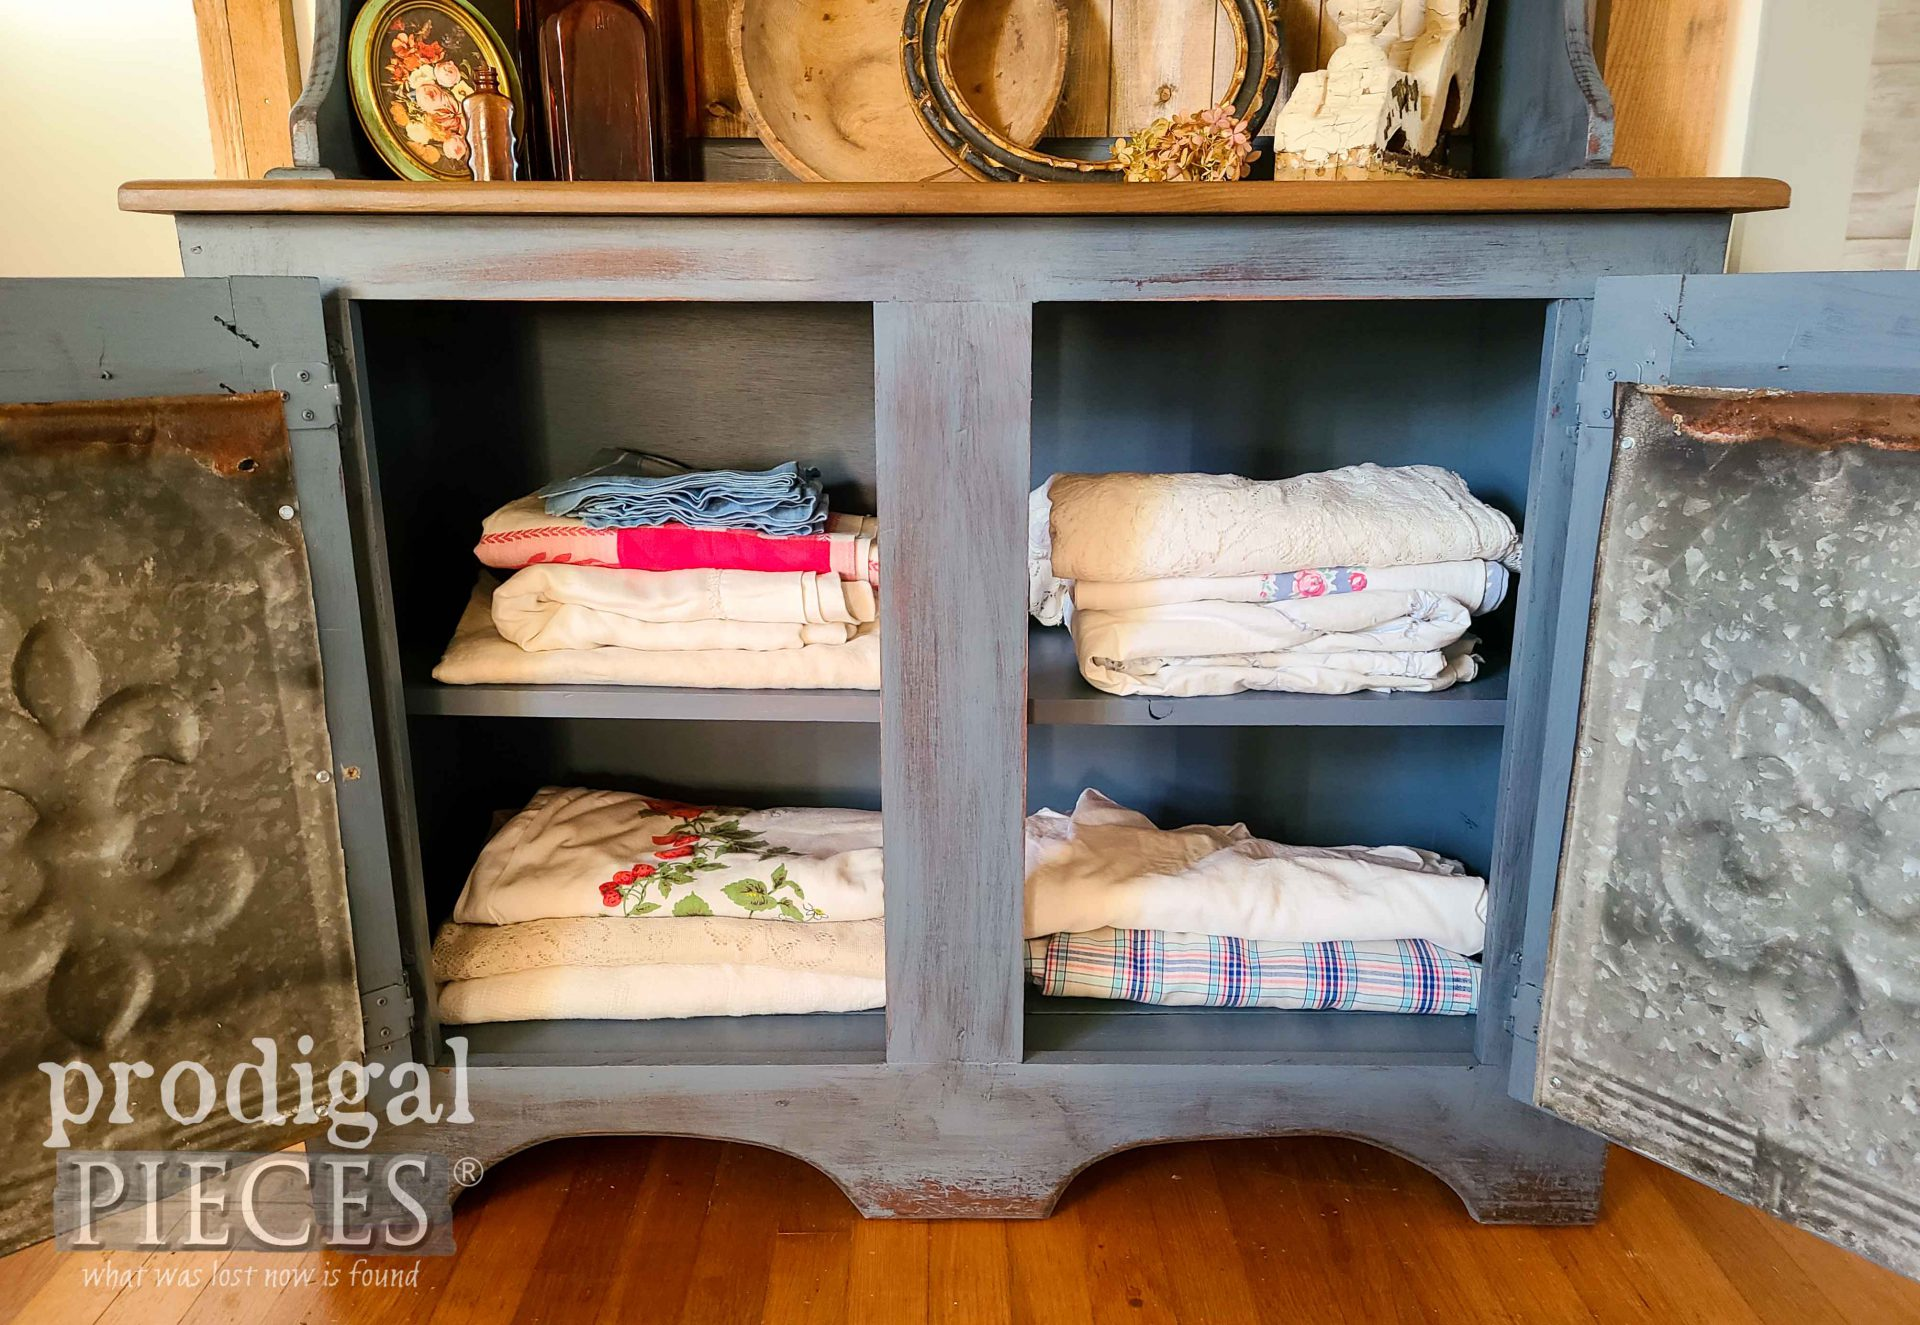 Inside Farmhouse Hutch Bottom by Larissa of Prodigal Pieces | prodigalpieces.com #prodigalpieces #farmhouse #home #homedecor